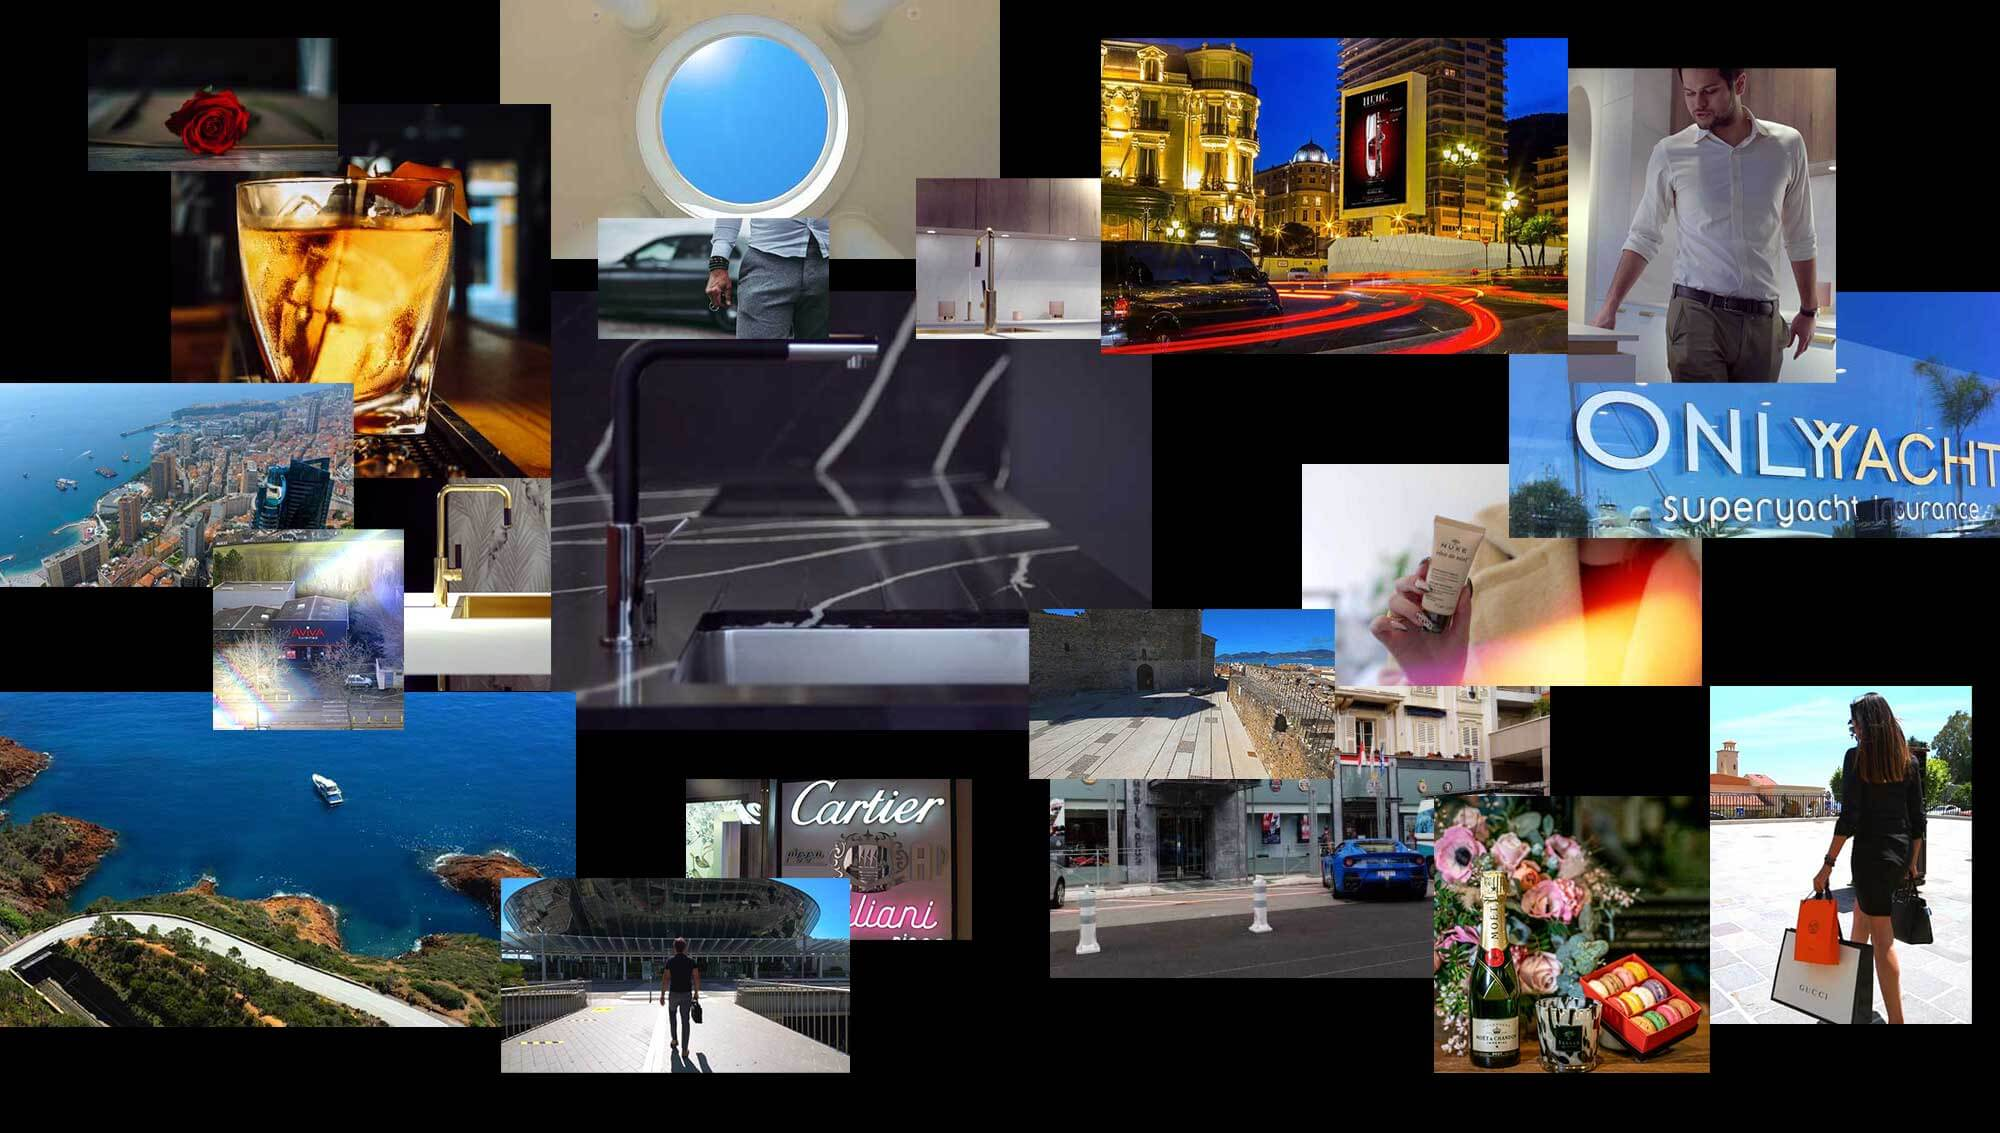 collage photos of rivia digital creations